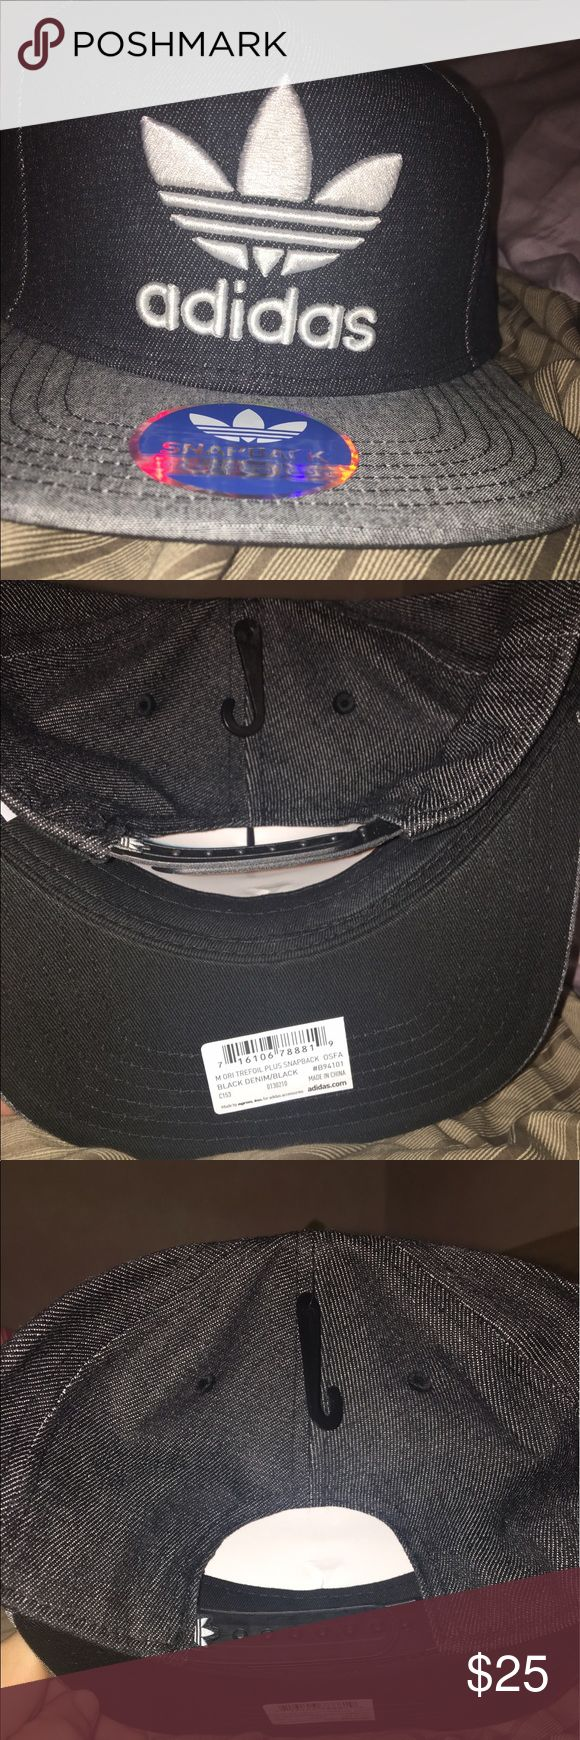 Adidas SnapBack hat Brand new from the adidas store! Never worn. Bought it as a gift but did not work out. If you have any questions feel free to ask :) adidas Accessories Hats